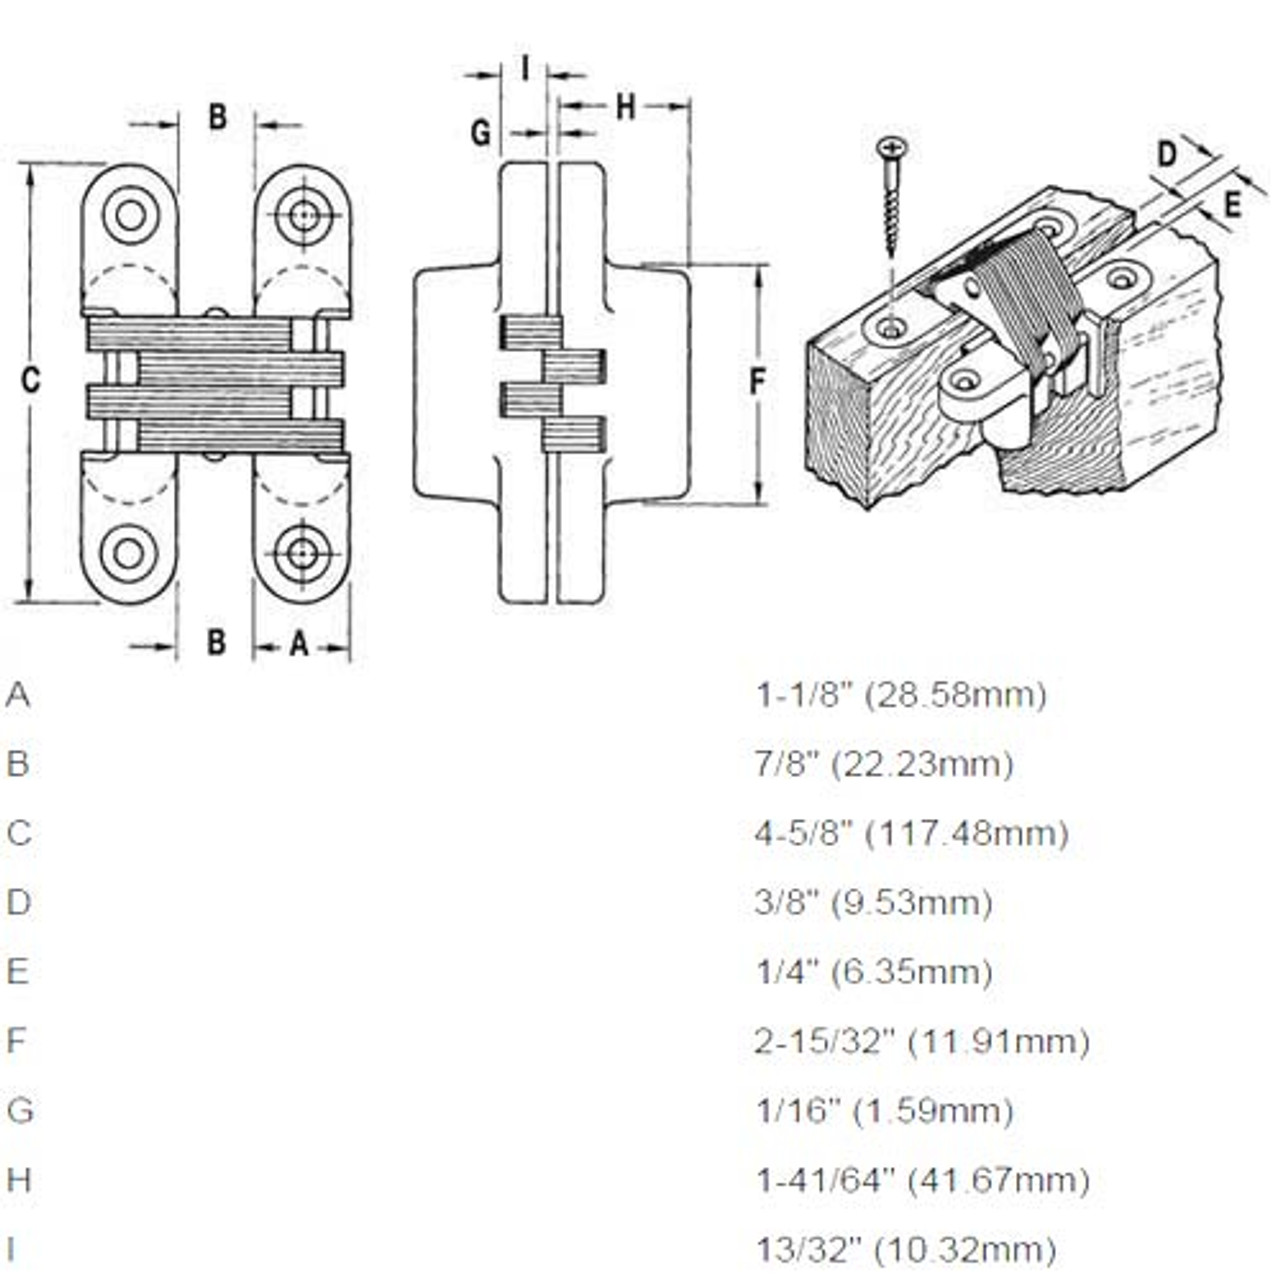 218PT1-US3 Soss Invisible Hinge